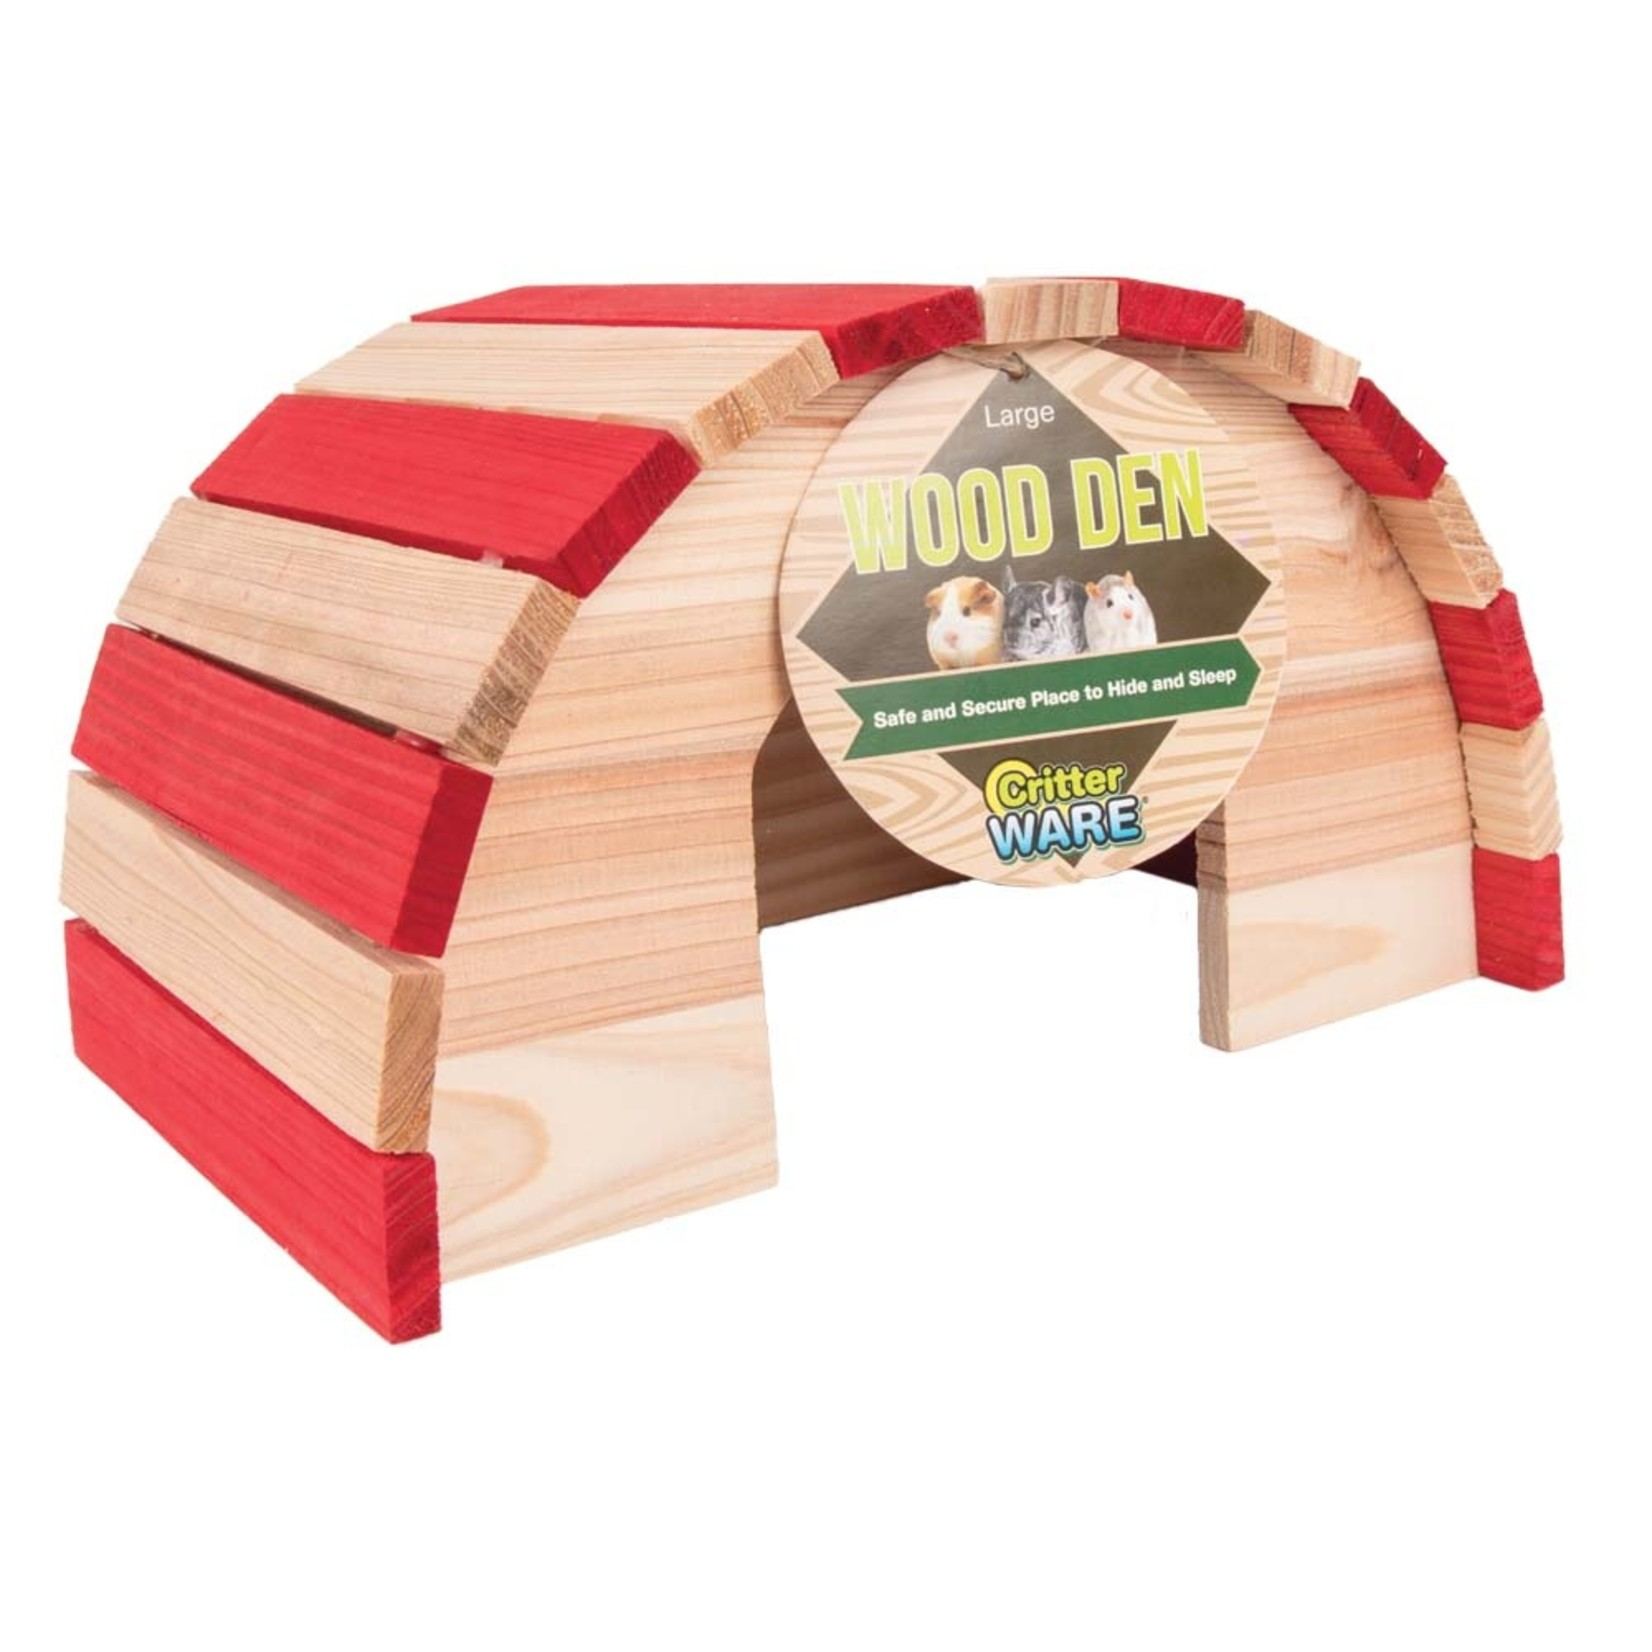 Wood den for small animals Red L